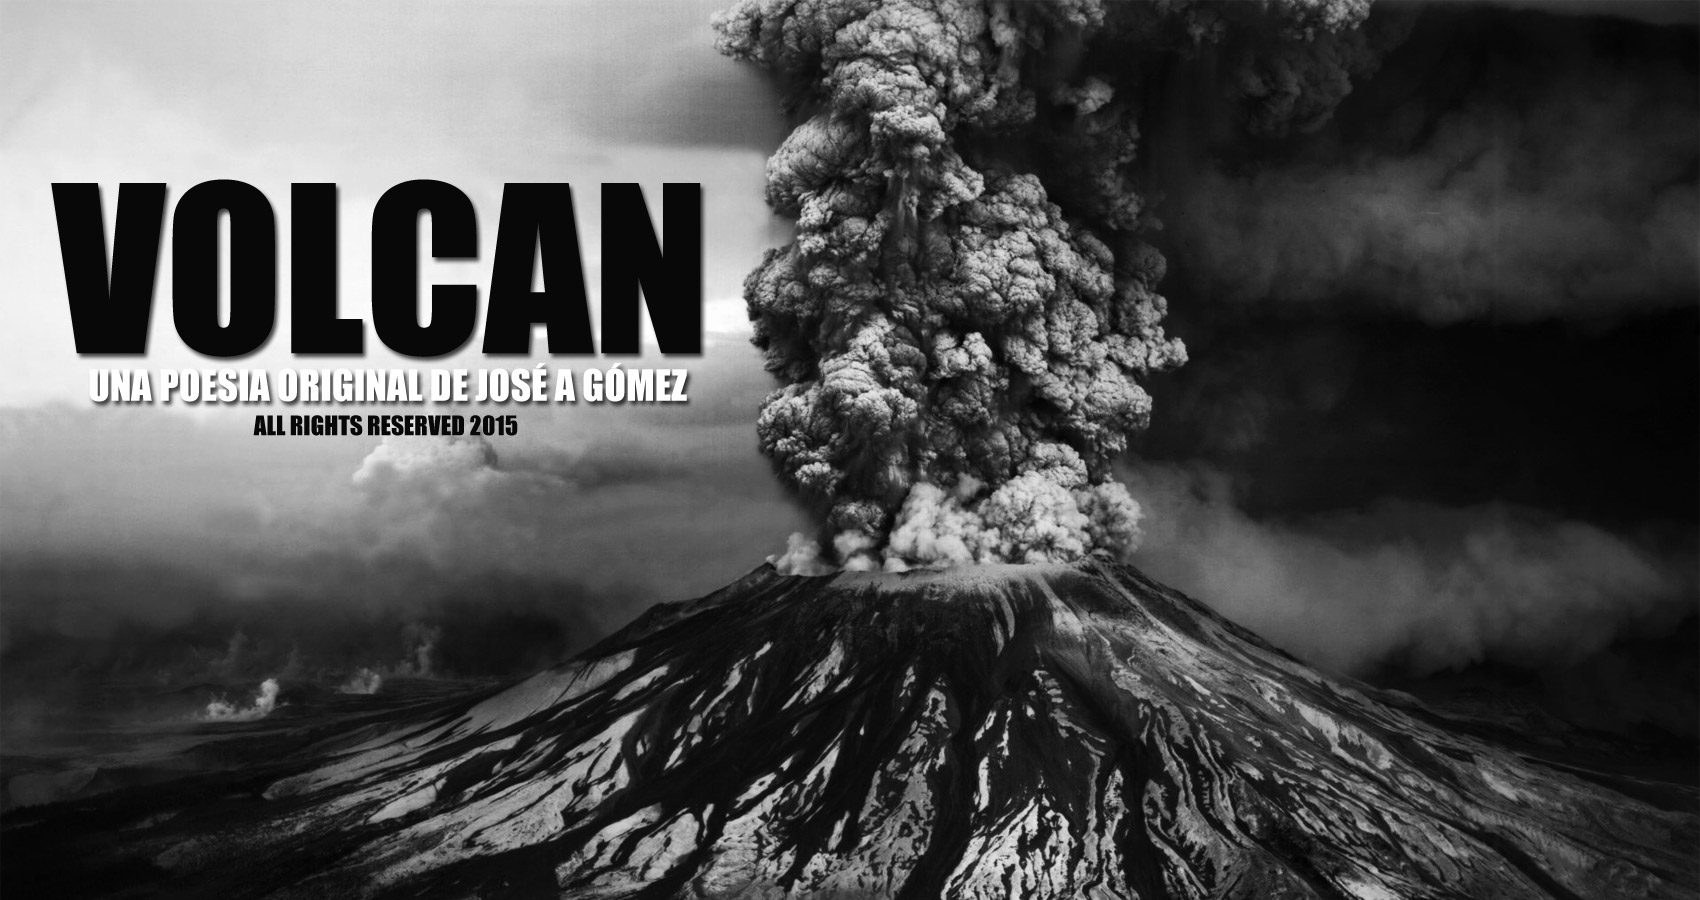 spillwords.com Volcan by Jose A Gomez